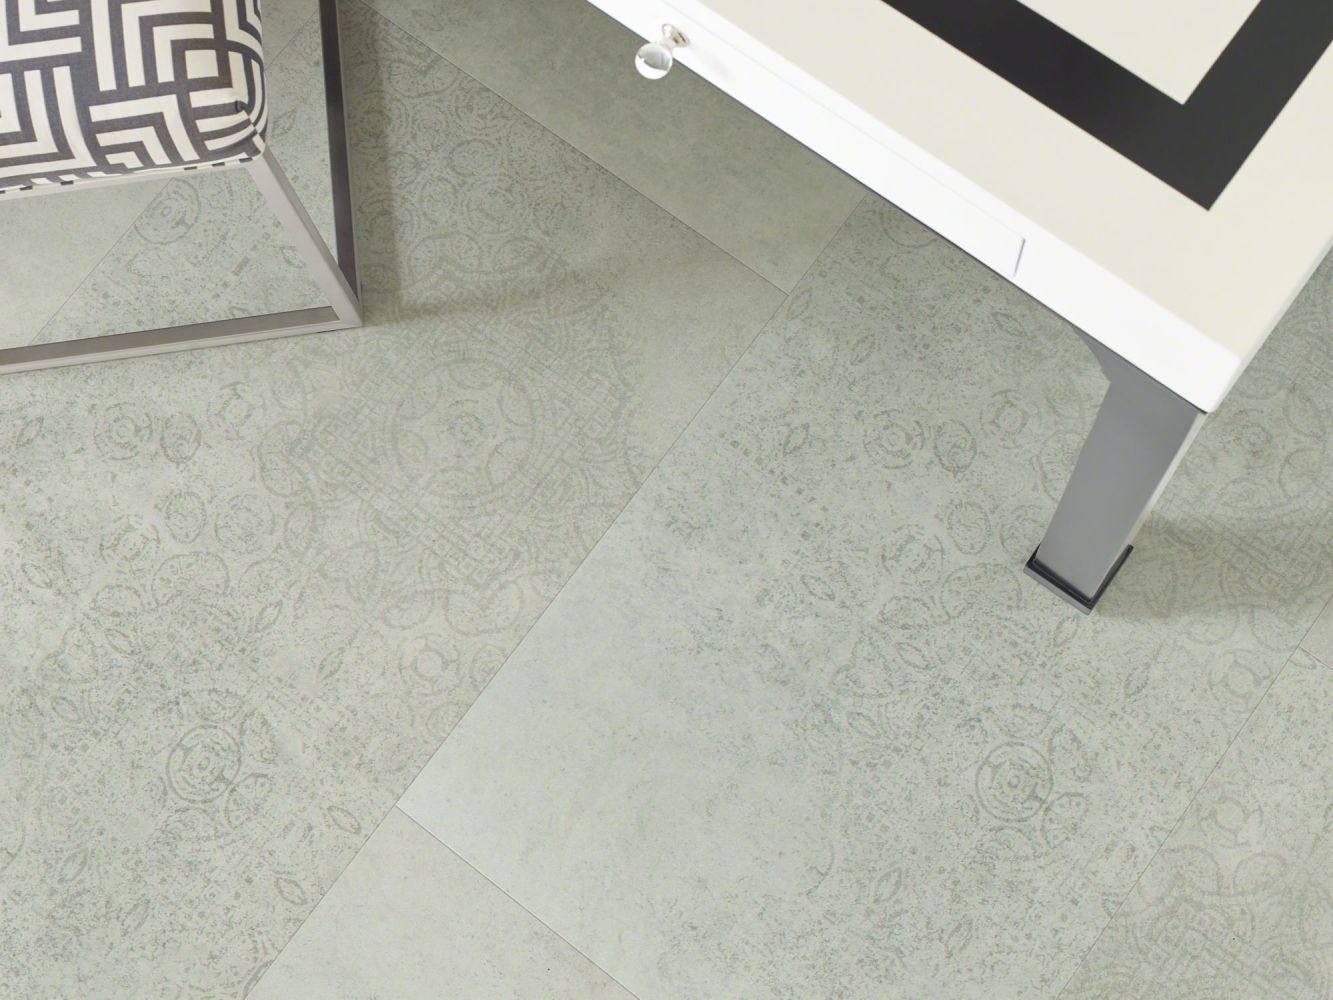 Shaw Floors Nfa HS Beaver Creek Tile Cascade 00597_VH546